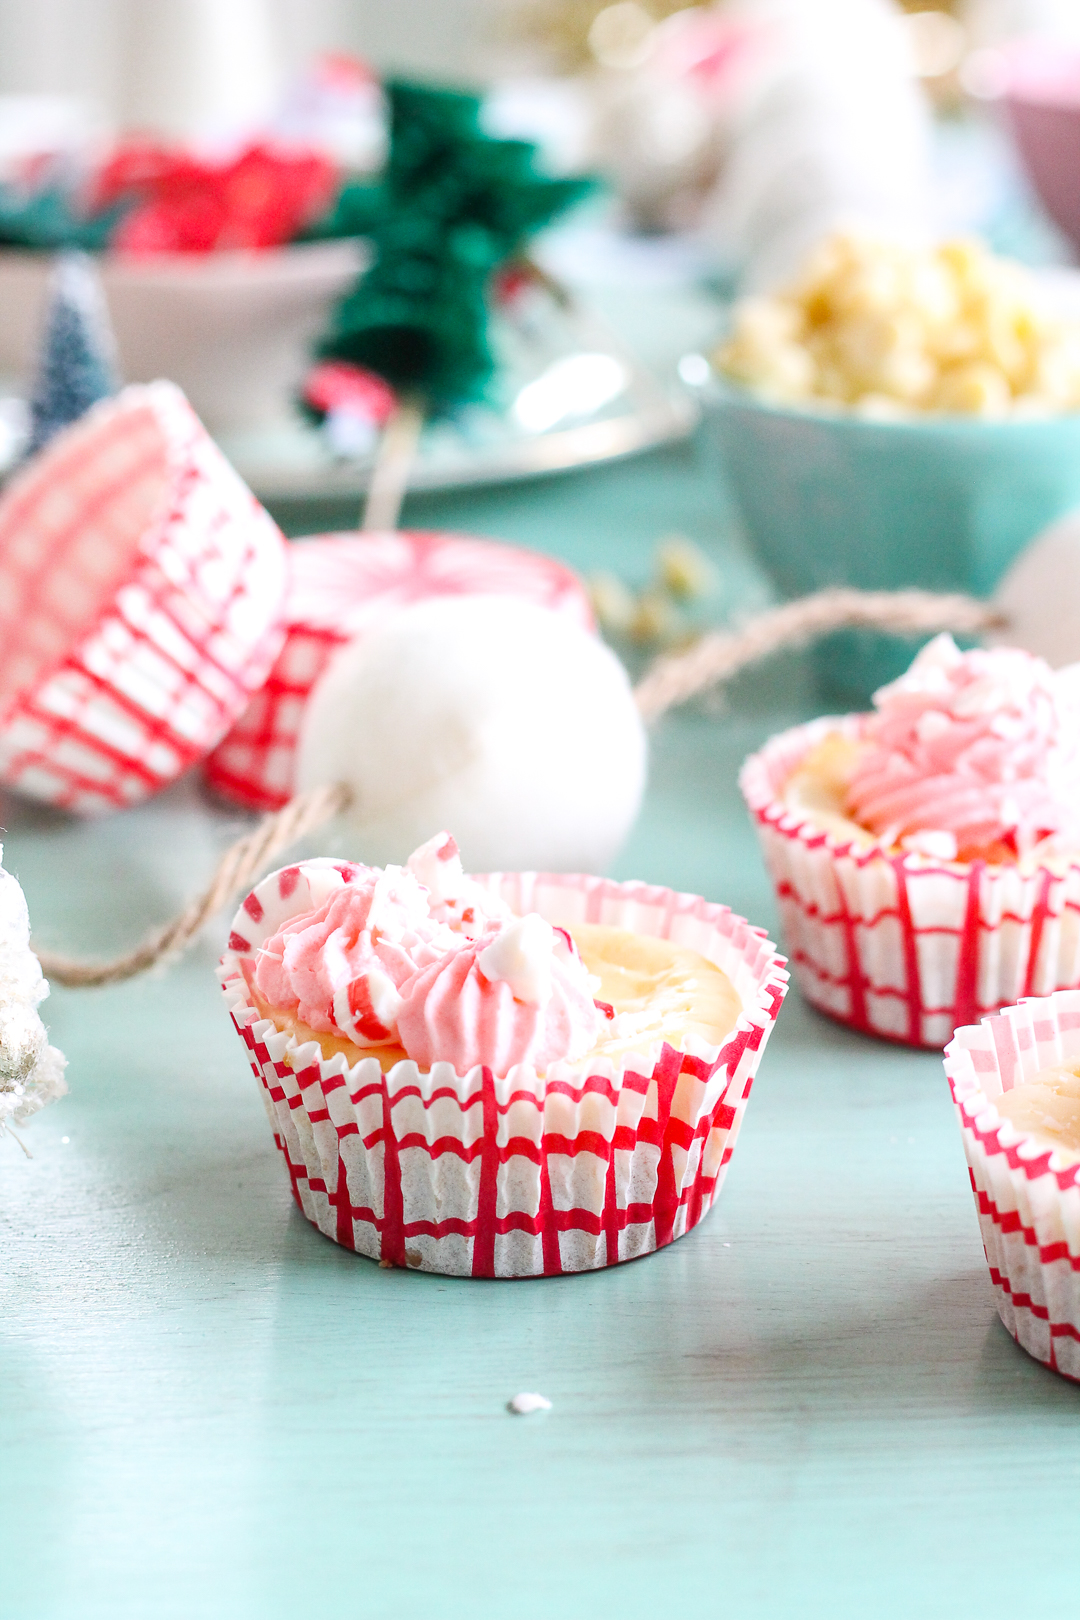 Mini Peppermint Bark Cheesecakes are exactly what you need to make it through this season. Come grab the recipe and see how easy it is to make them yourself!